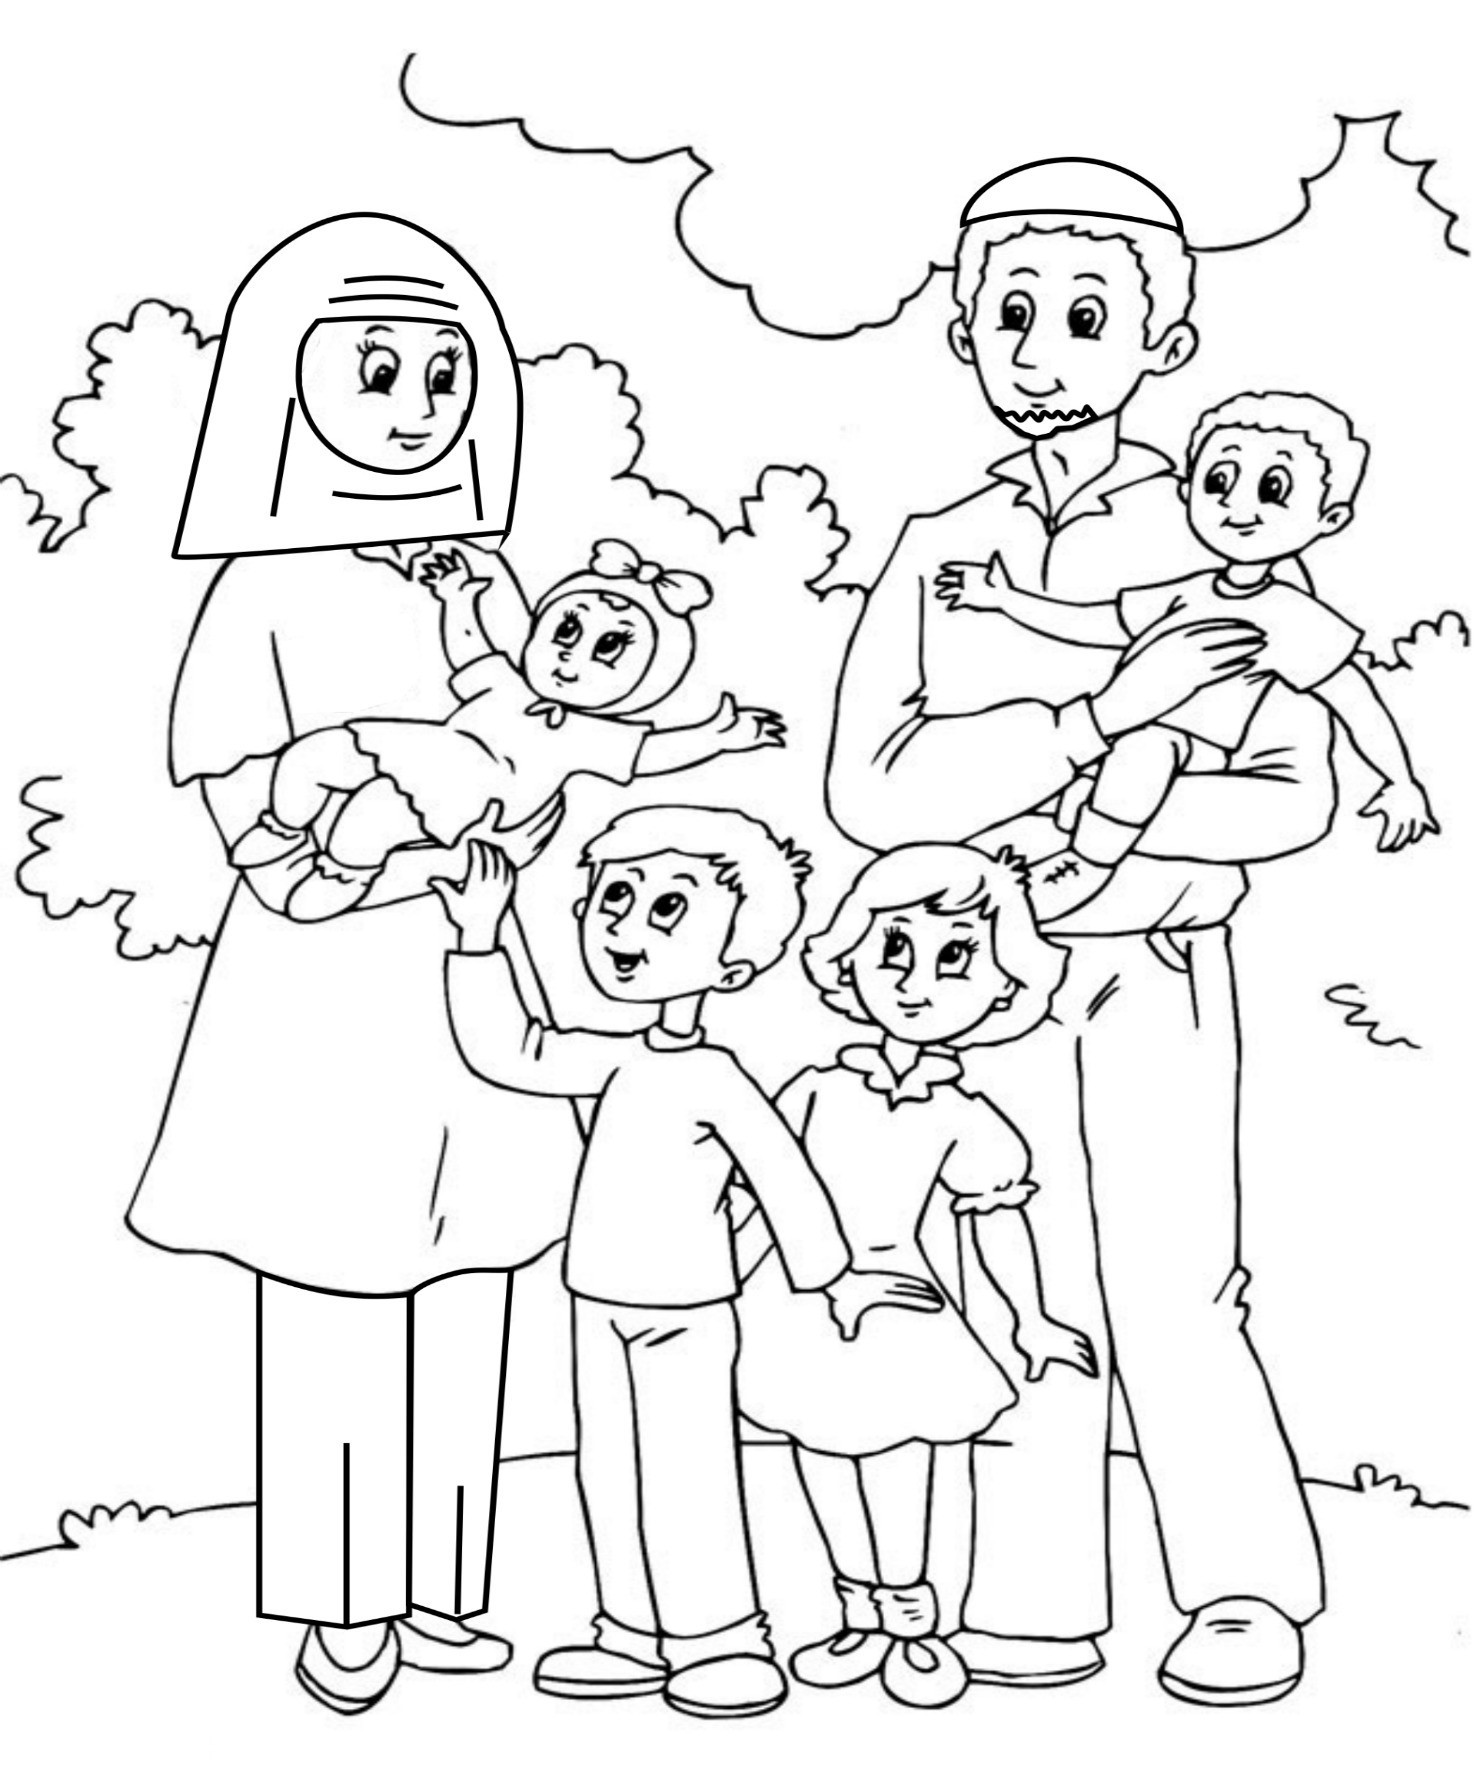 coloring family picture get this kids39 printable family coloring pages x4lk2 picture family coloring